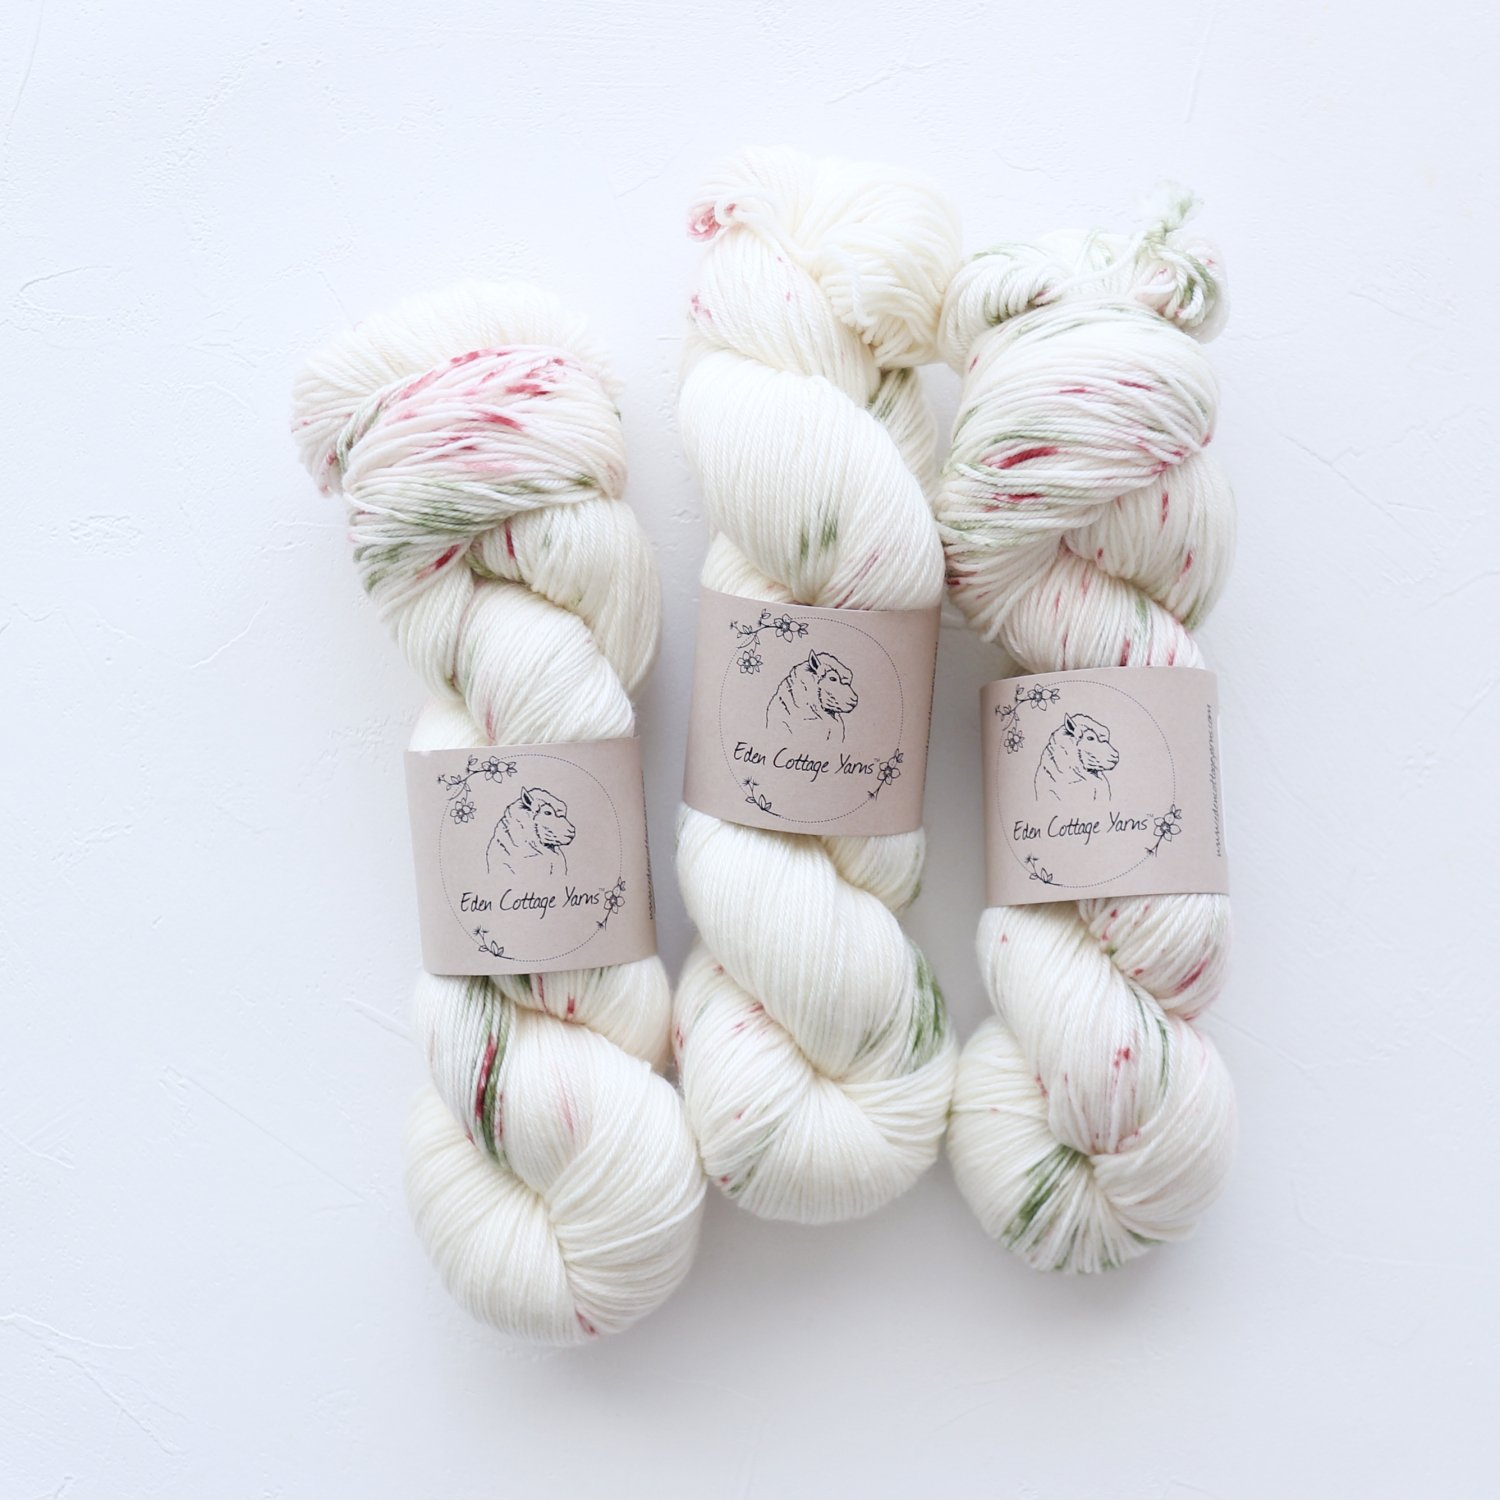 【Eden Cottage Yarns】<br>Pendle 4ply<br>Festive Fun